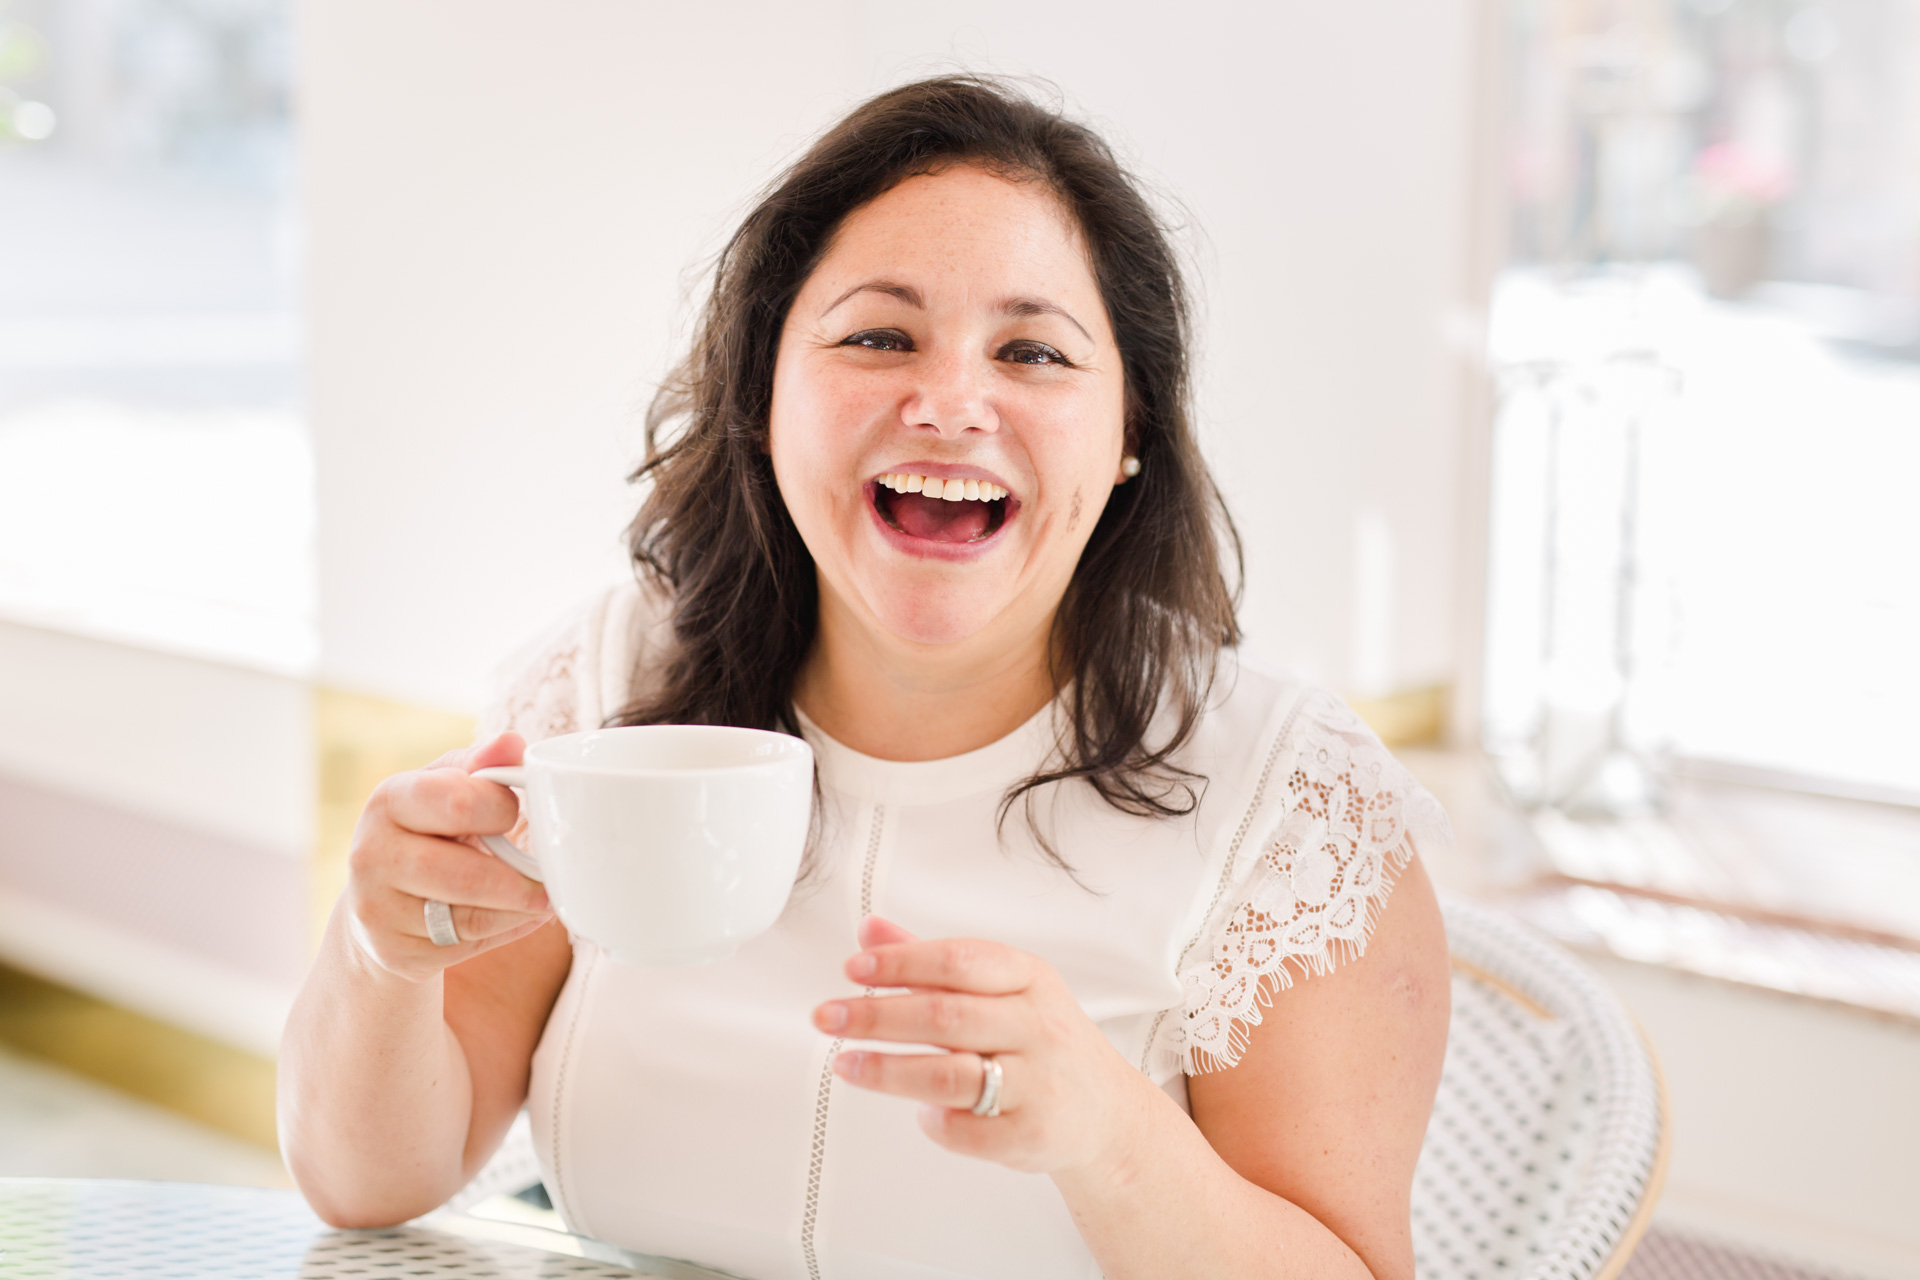 A branding photo of entrepreneur Marjorie Soto Diaz laughing and holding a cup of tea